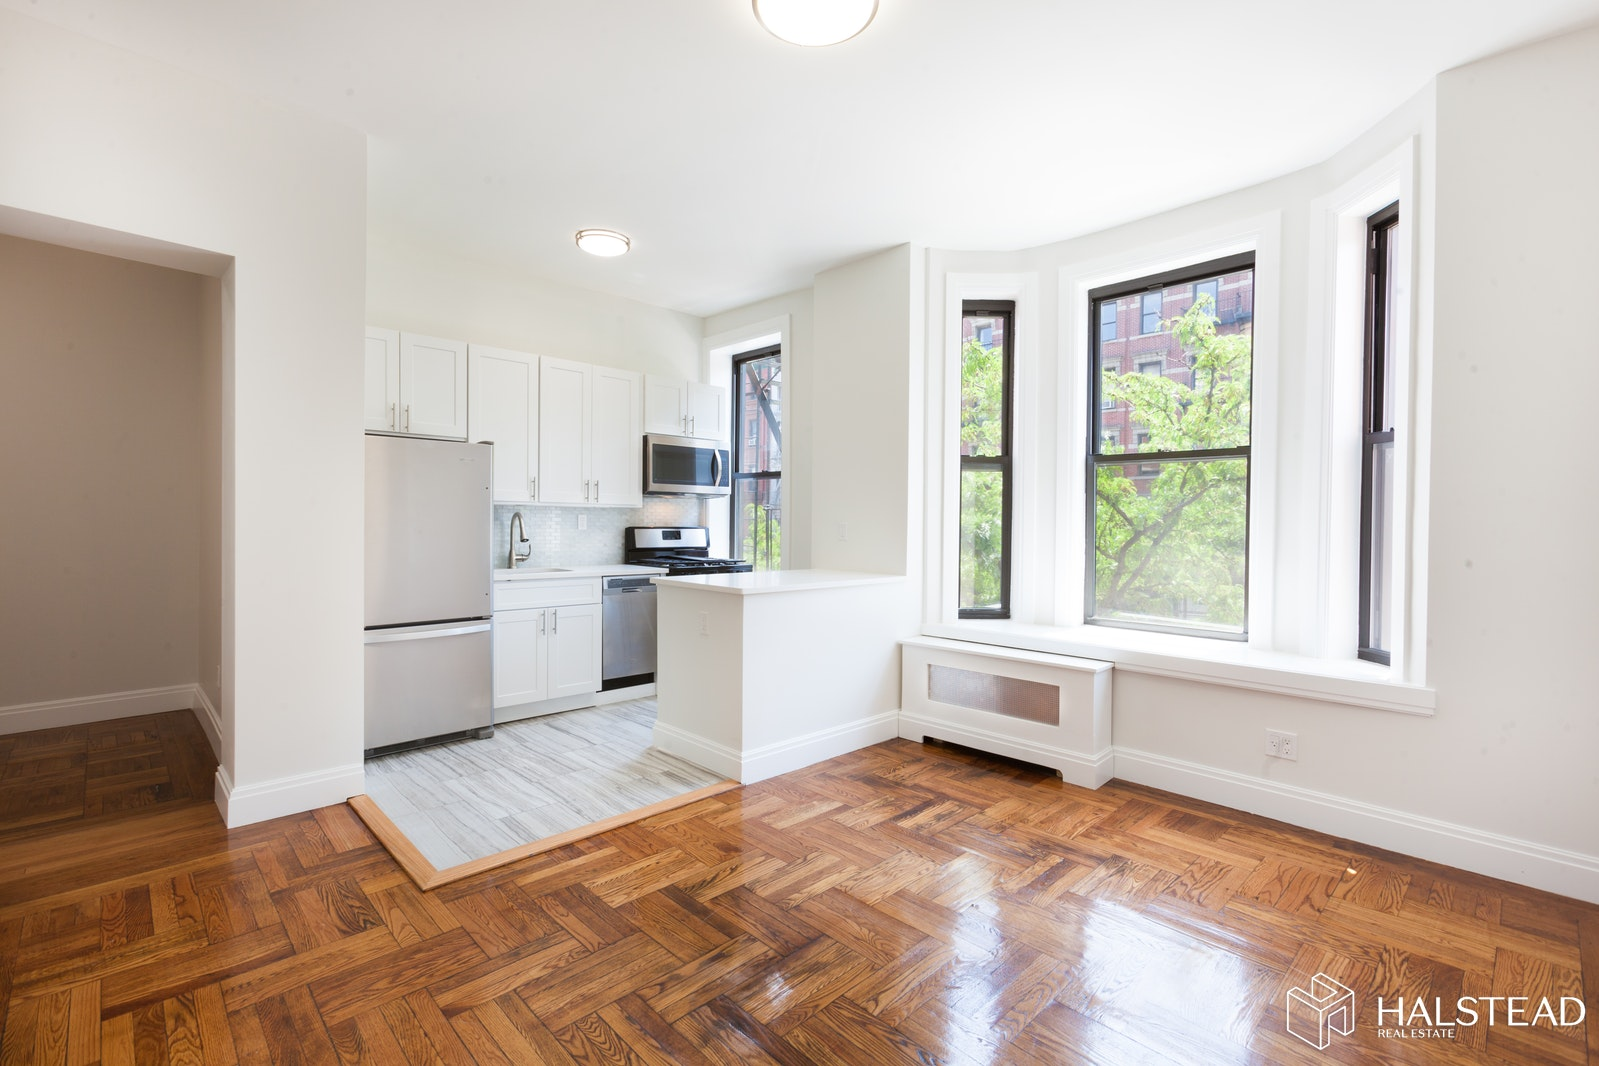 17 West 125th Street 4i, Upper Manhattan, NYC, 10027, $2,700, Rented Property, Halstead Real Estate, Photo 2